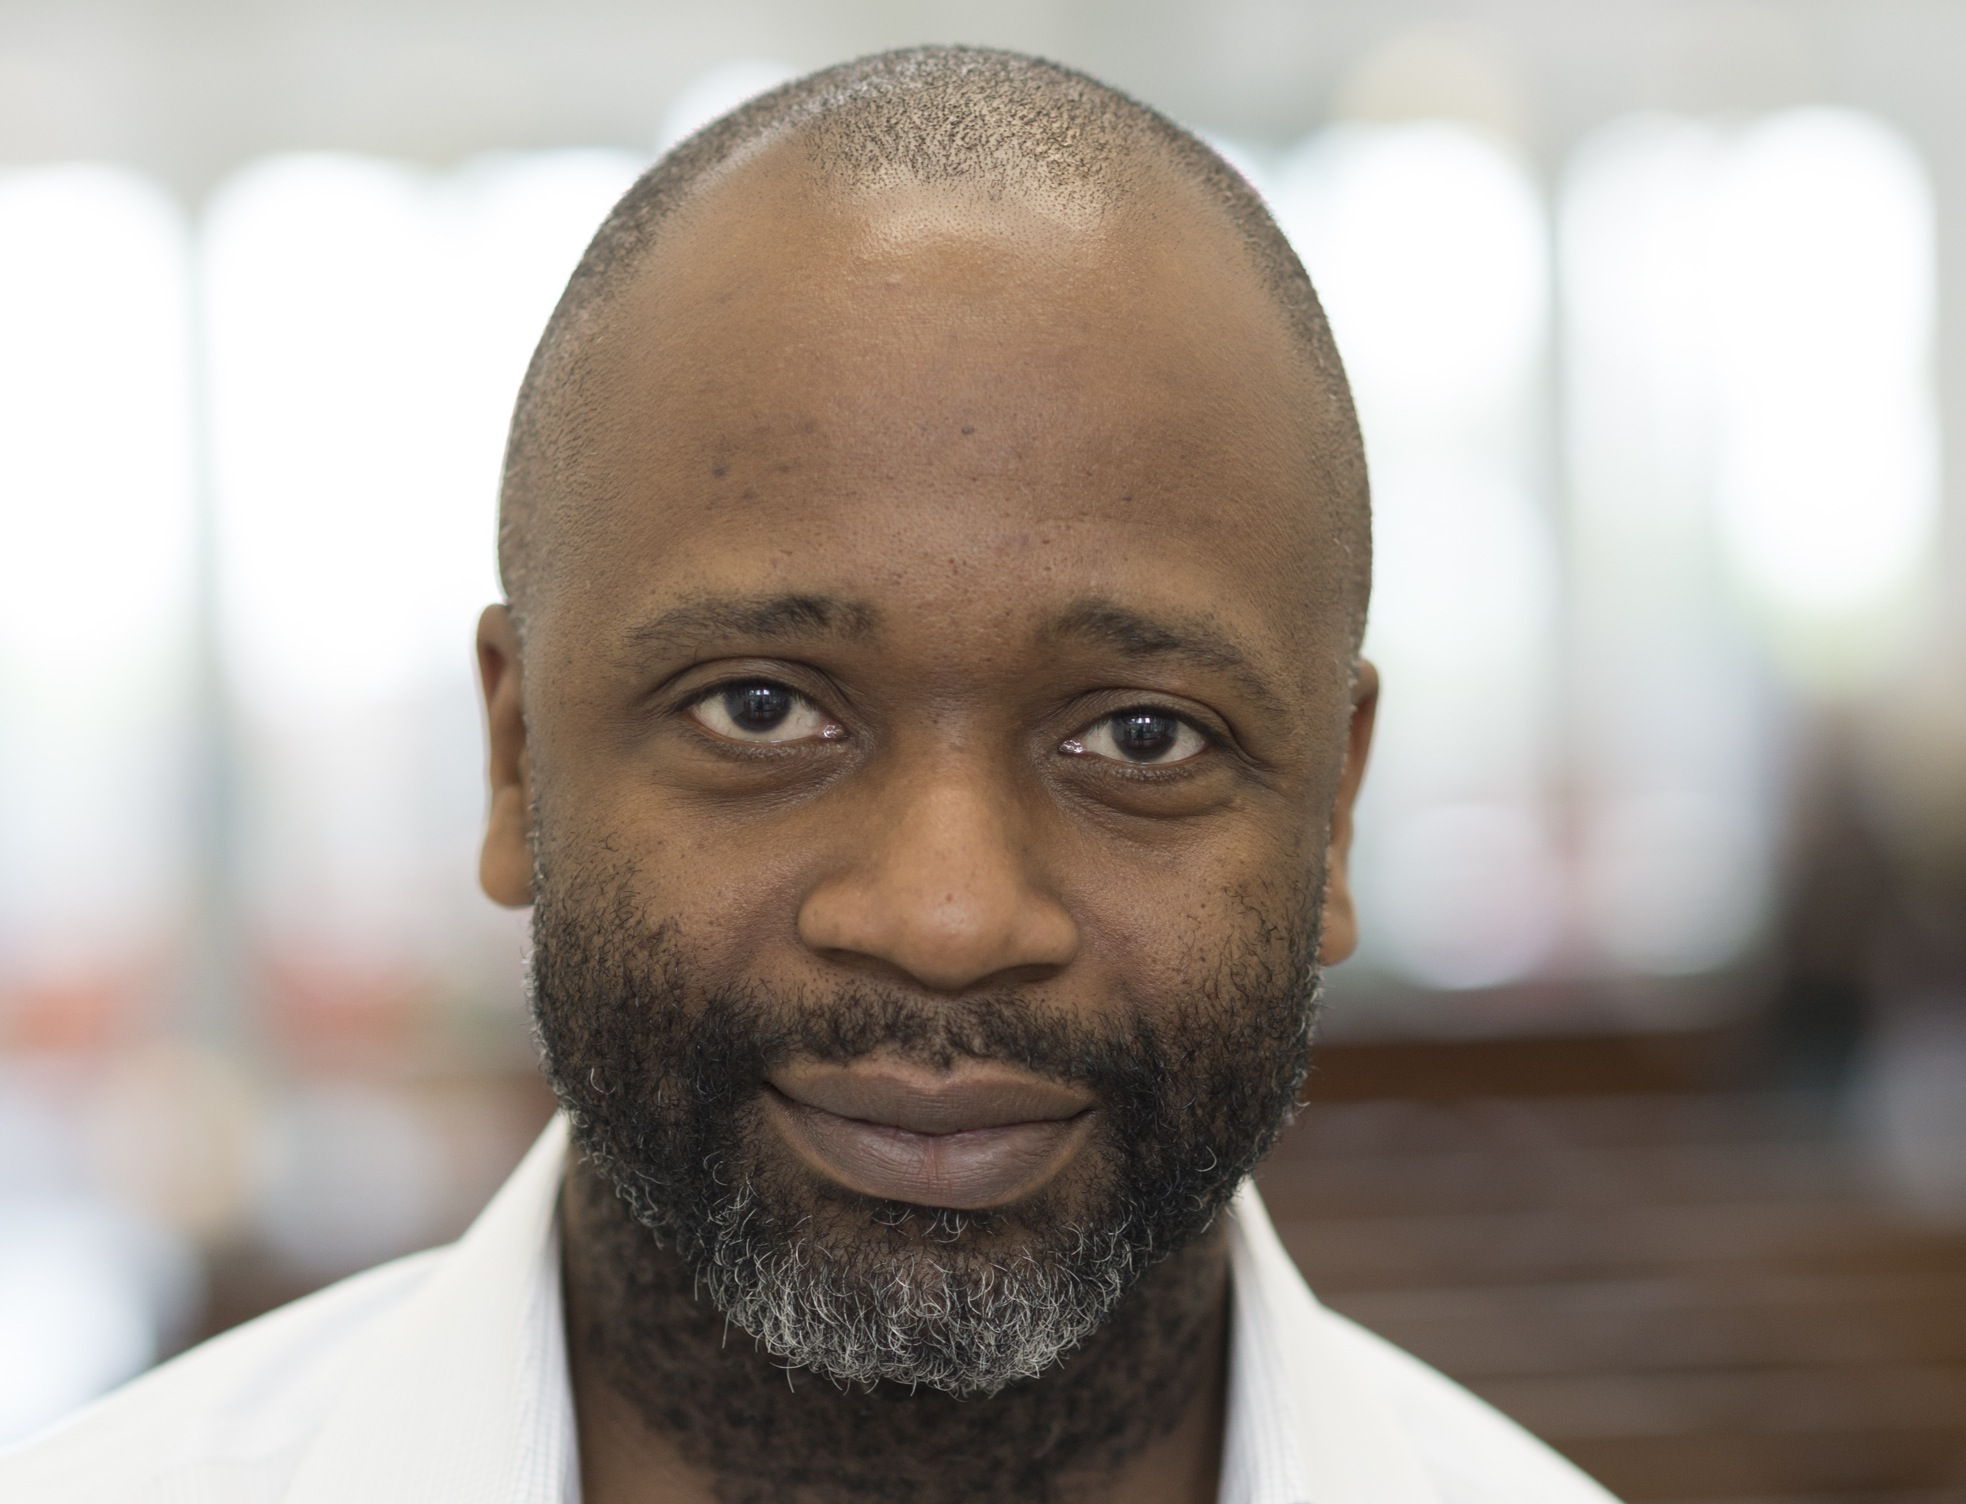 Theaster Gates (Image courtesy of Nathan Keay, © MCA Chicago)